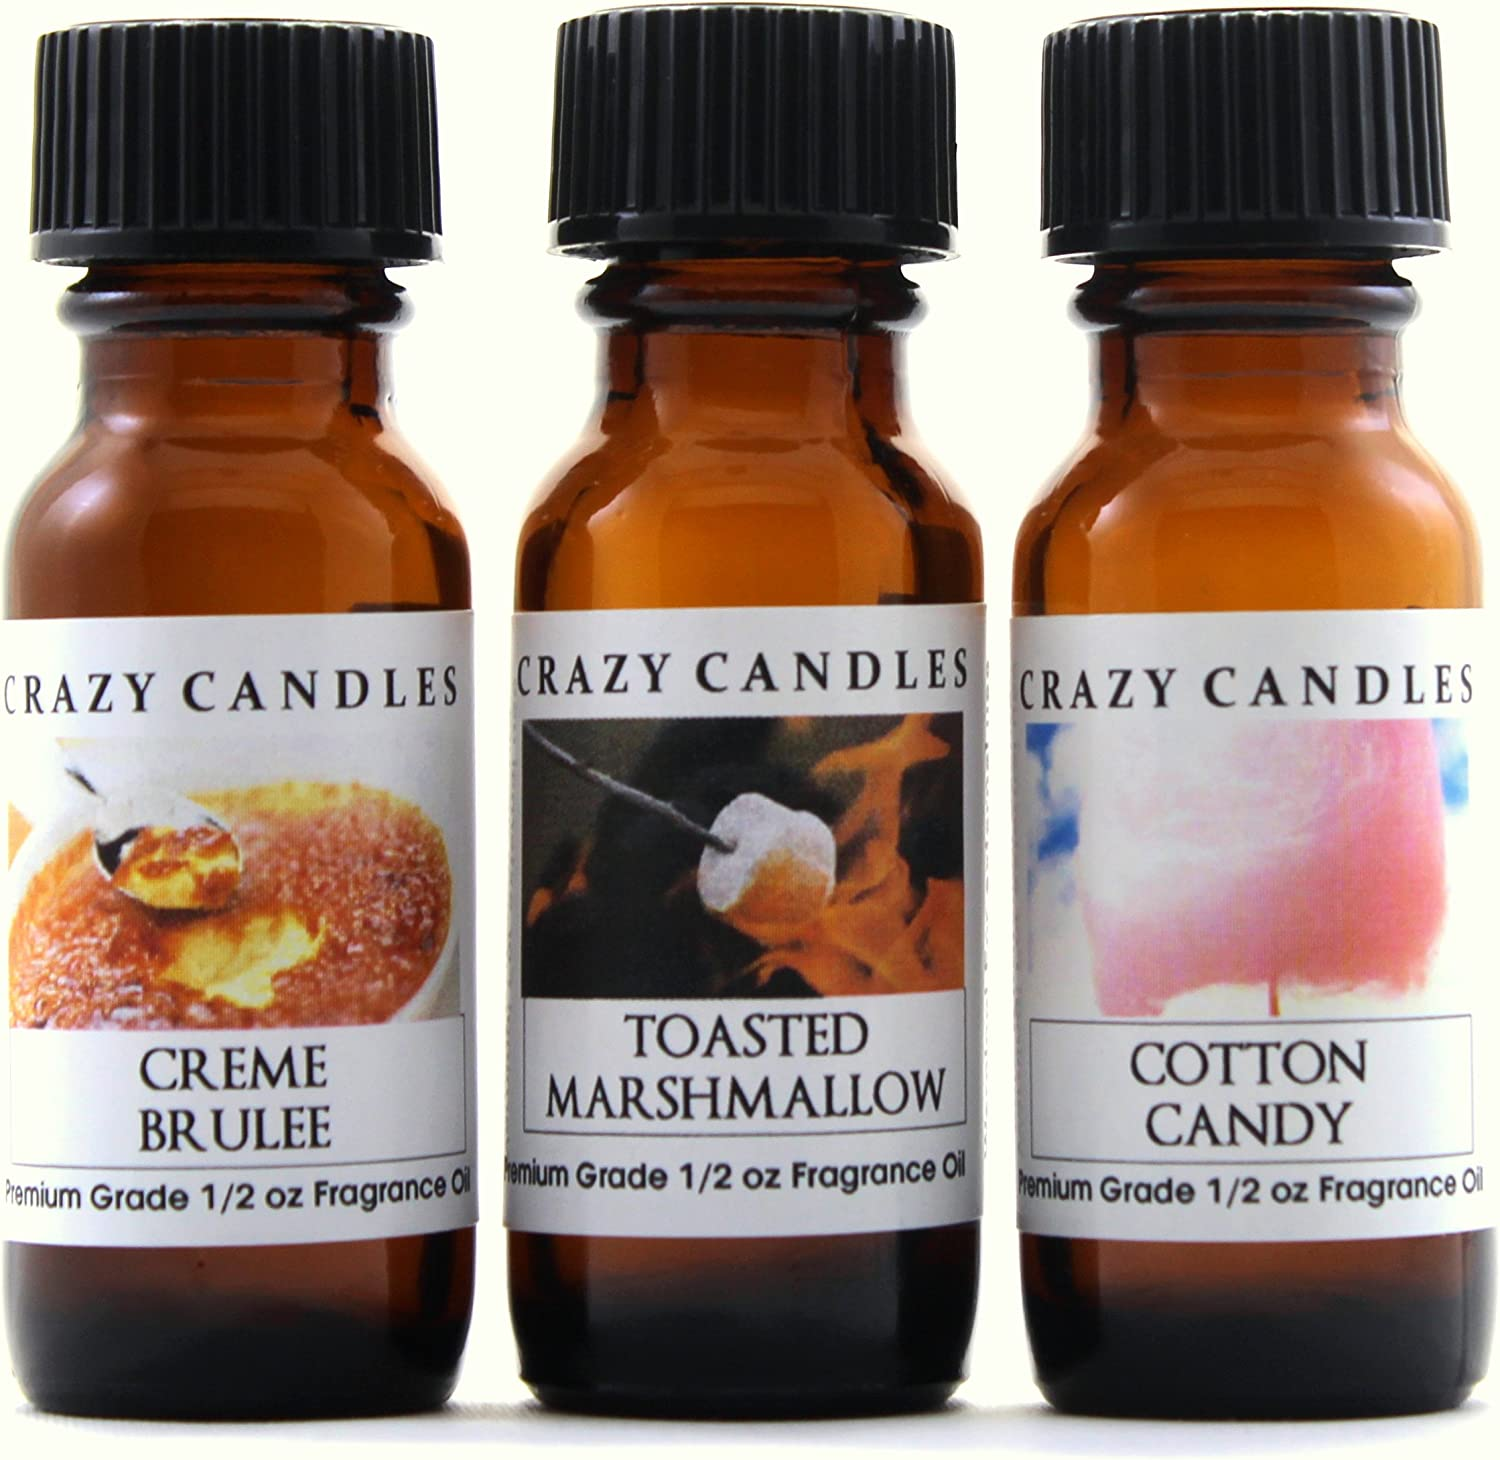 Crazy Candles 3 Bottles Set, 1 Creme Brulee, 1 Toasted Marshmallow, 1 Cotton Candy 1/2 Fl Oz Each (15ml) Premium Grade Scented Fragrance Oils